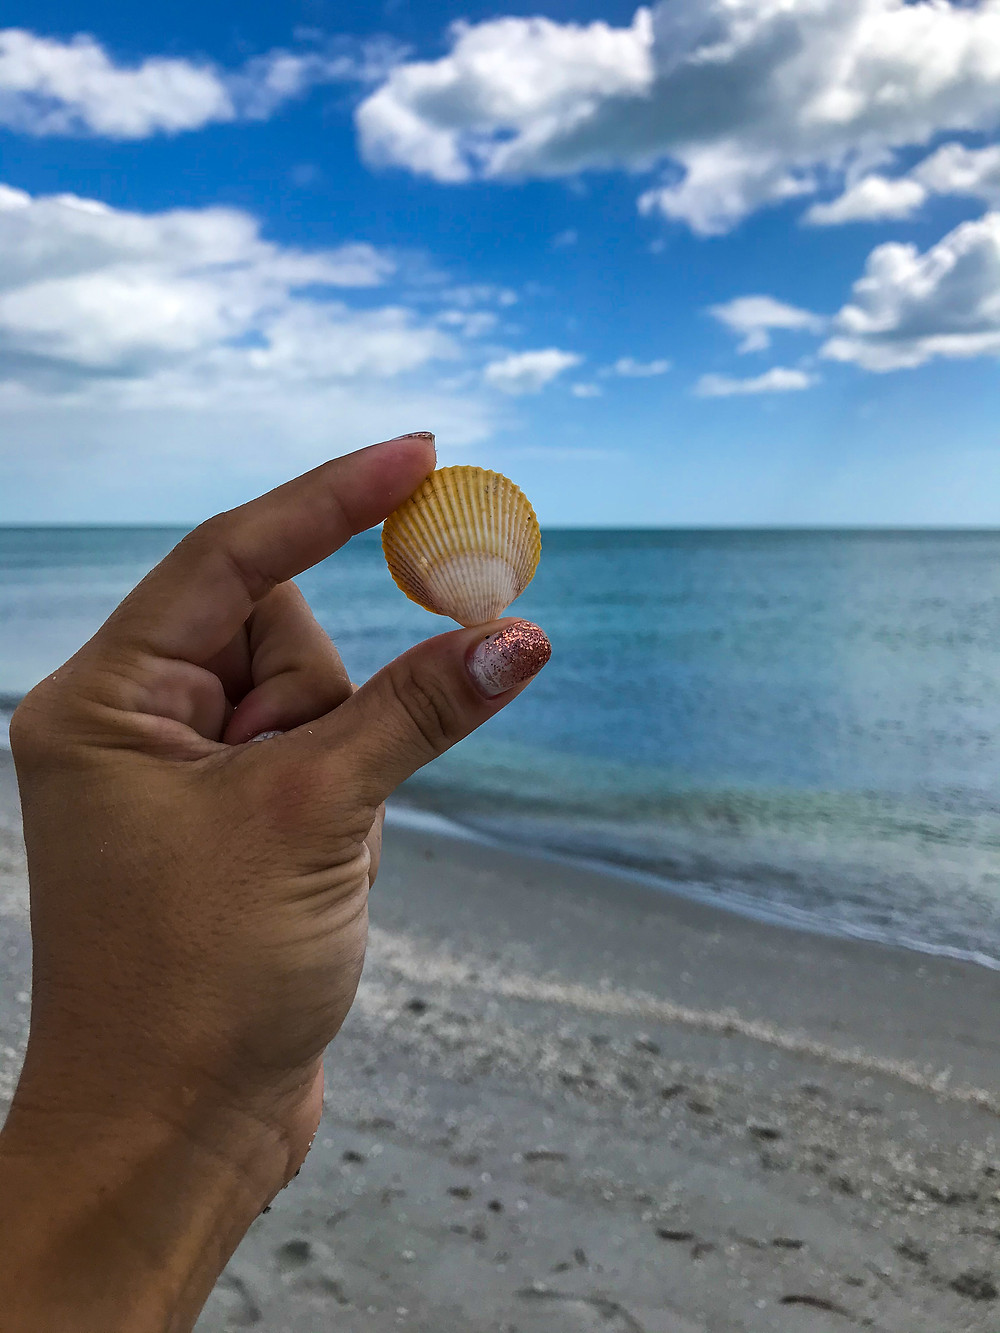 Small shell found during low tide in Sanibel Island